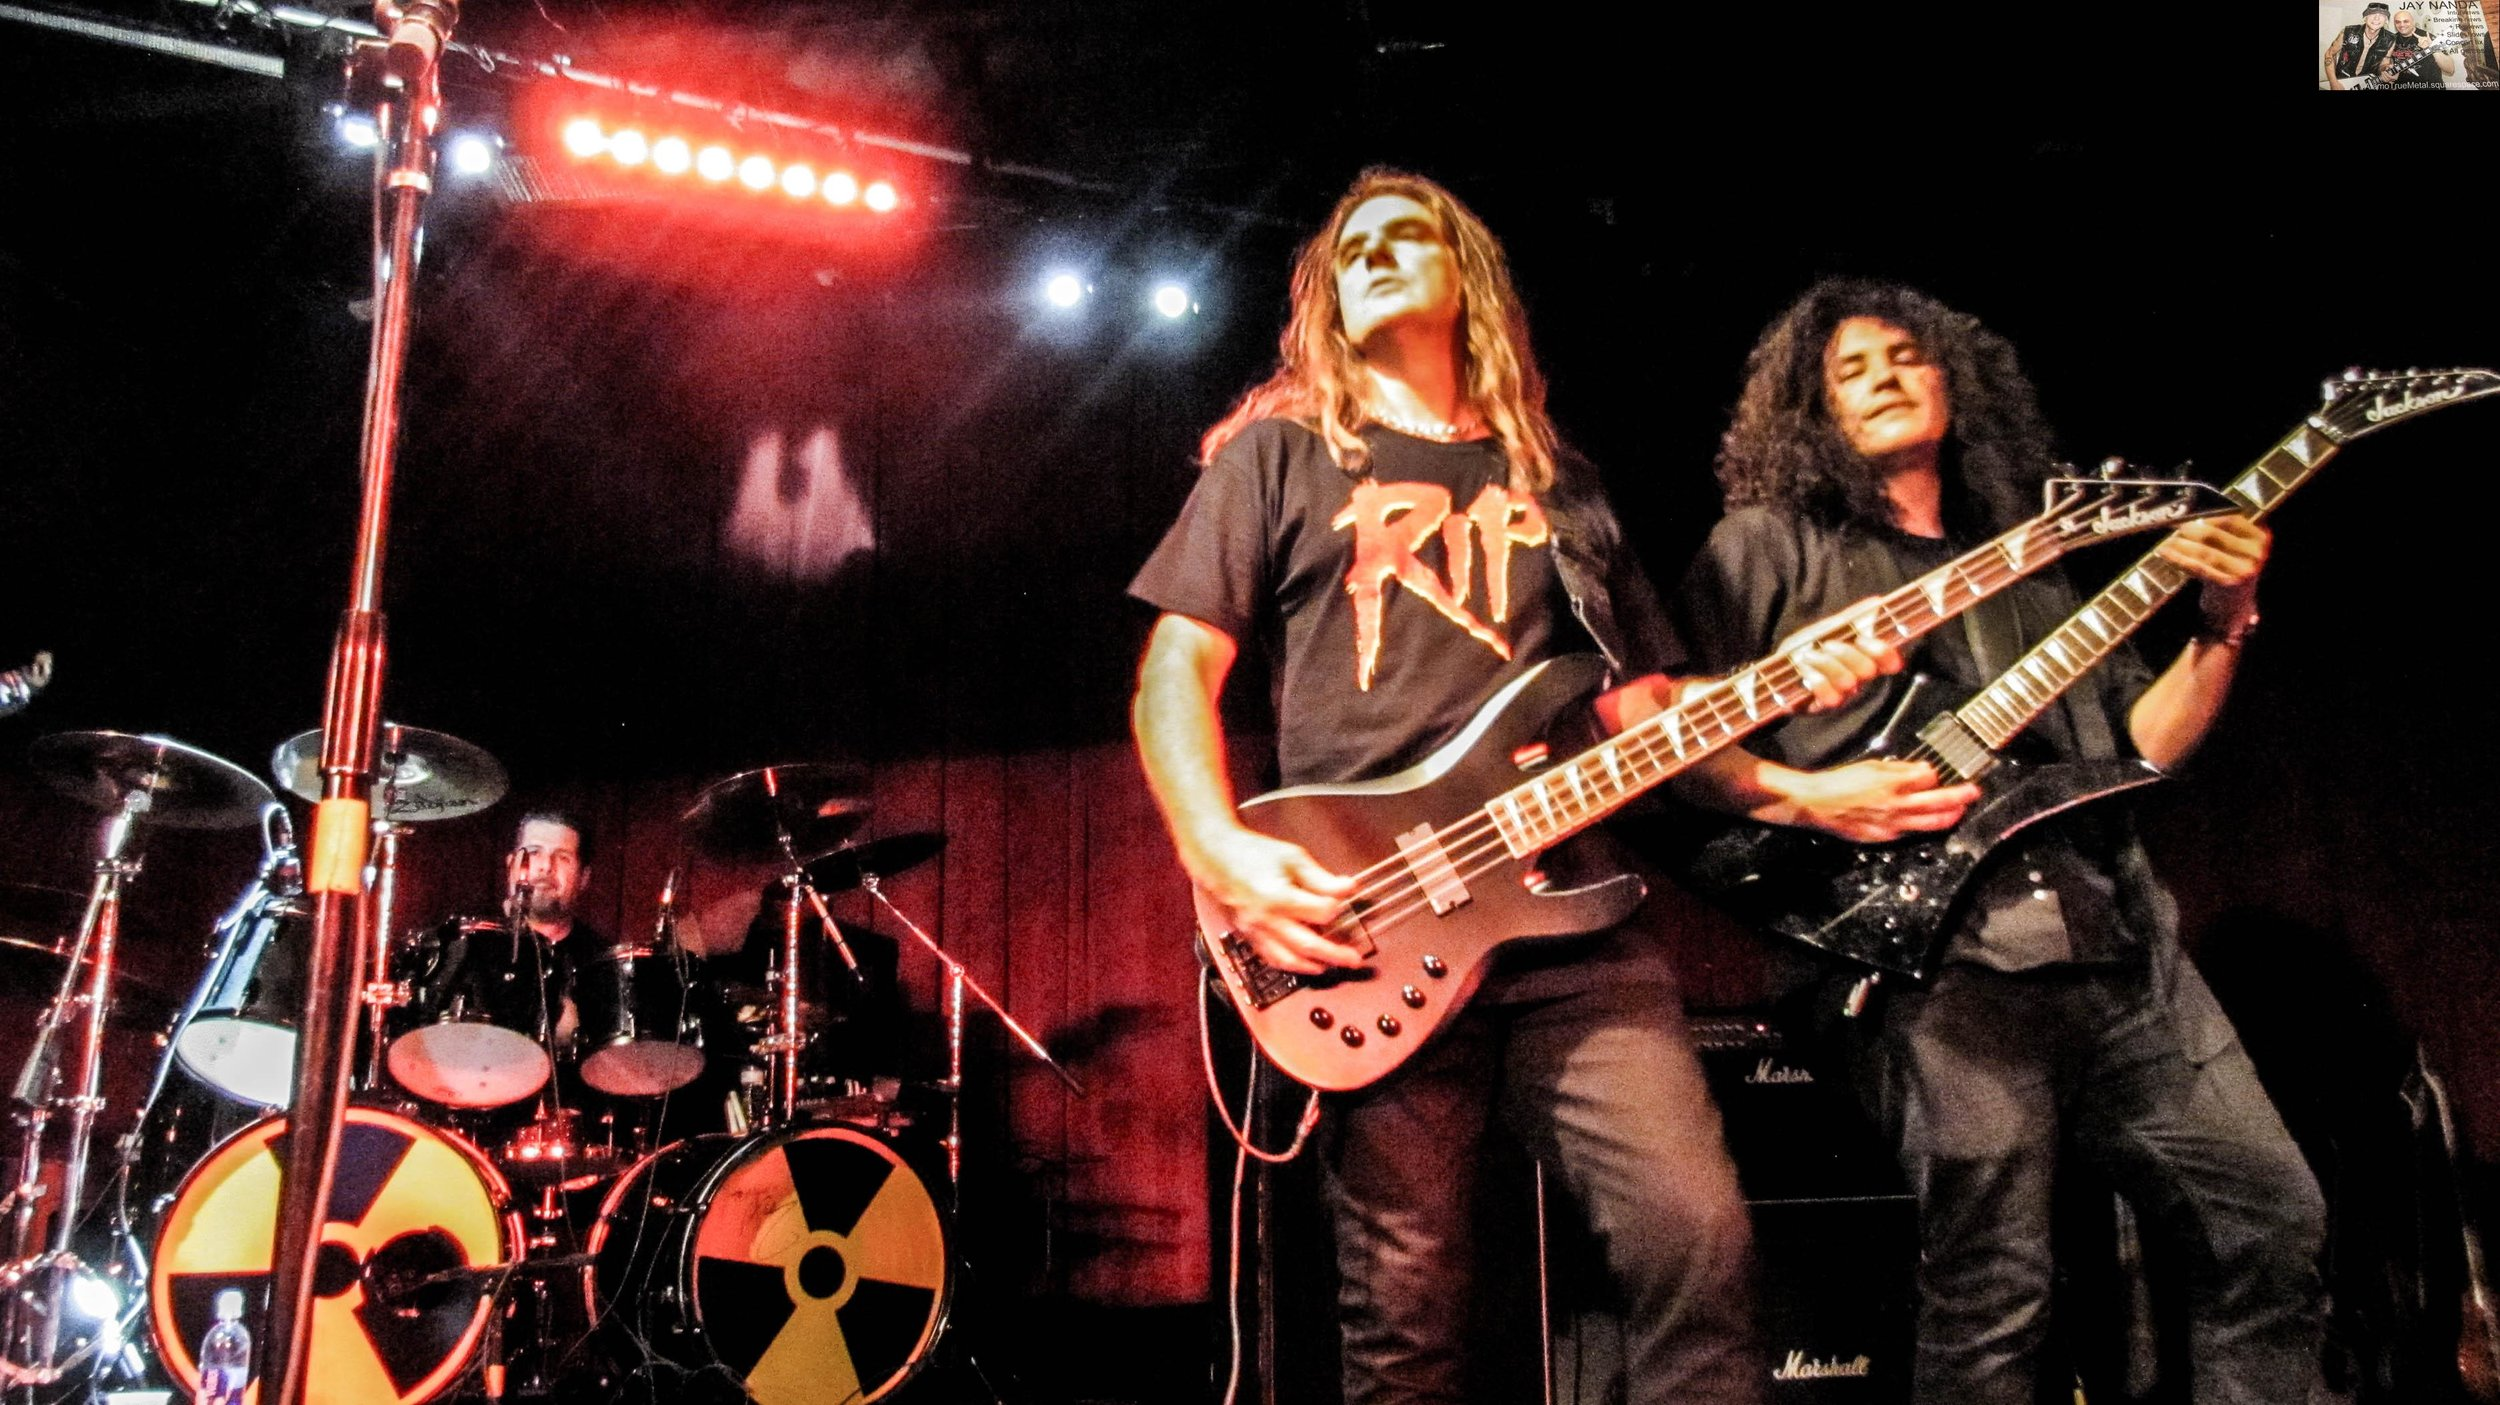 Ellefson jams with Rust In Peace guitarist Mario Prz Jr., and drummer Miguel Morales.